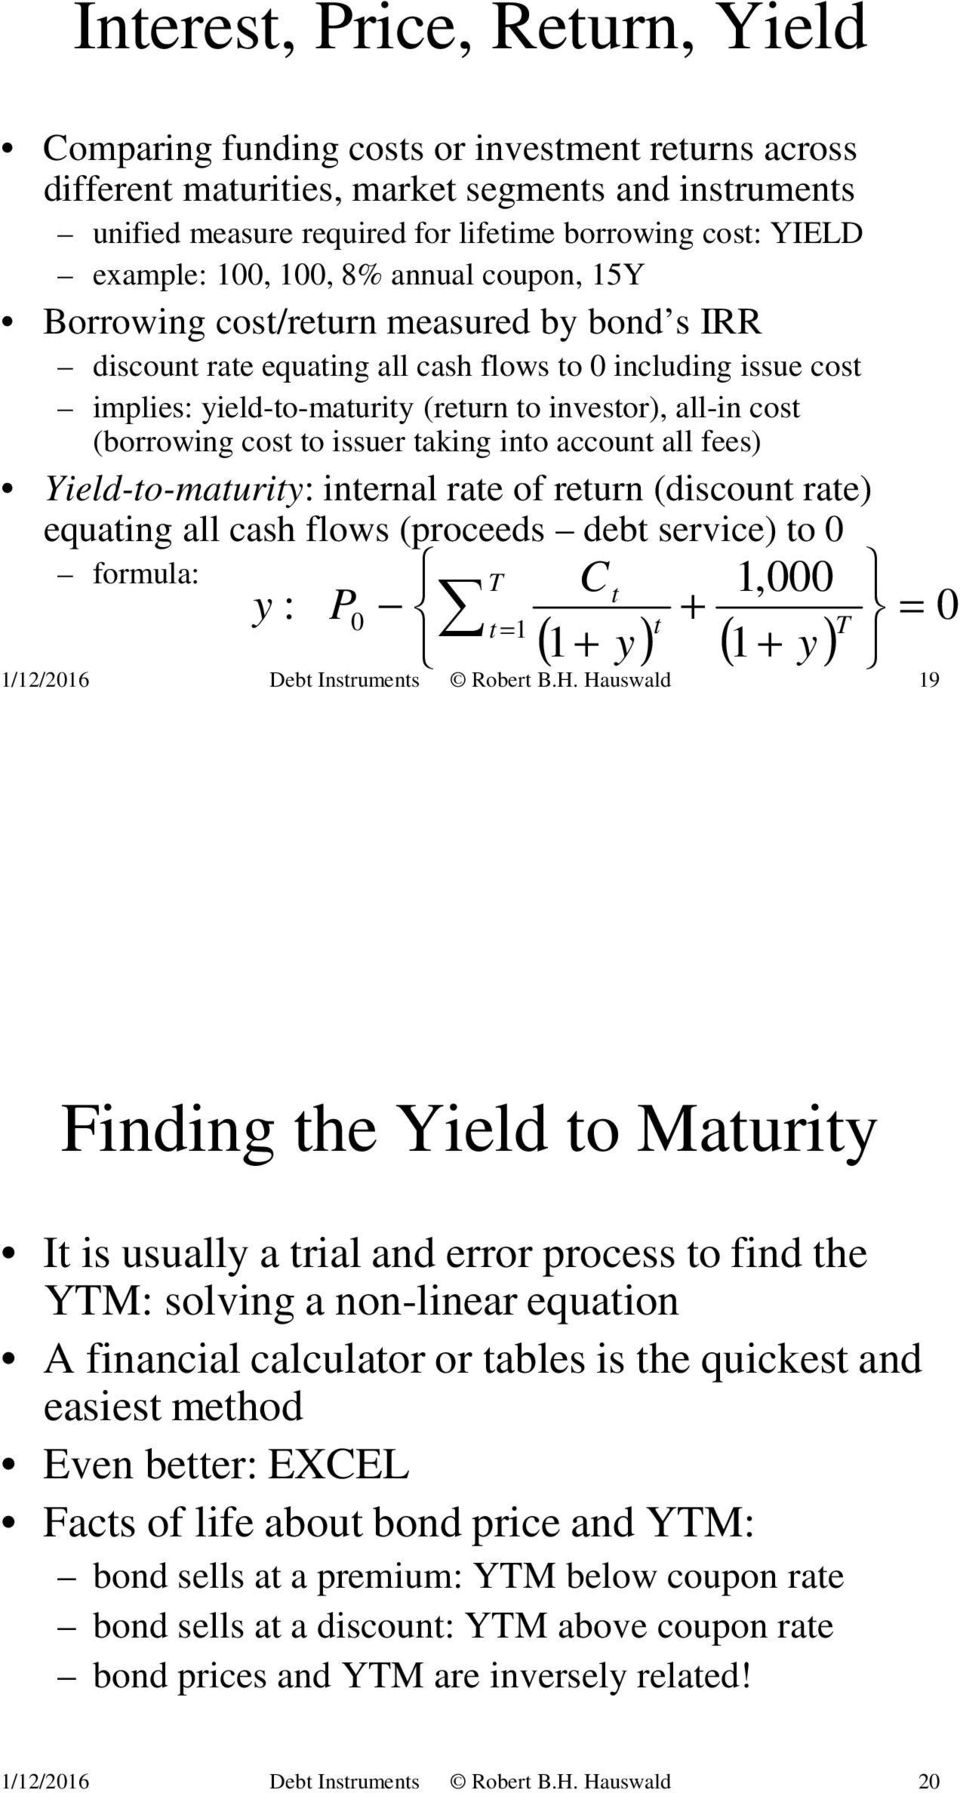 all-in cost (borrowing cost to issuer taking into account all fees) Yield-to-maturity: internal rate of return (discount rate) equating all cash flows (proceeds debt service) to 0 formula: y : 1,000